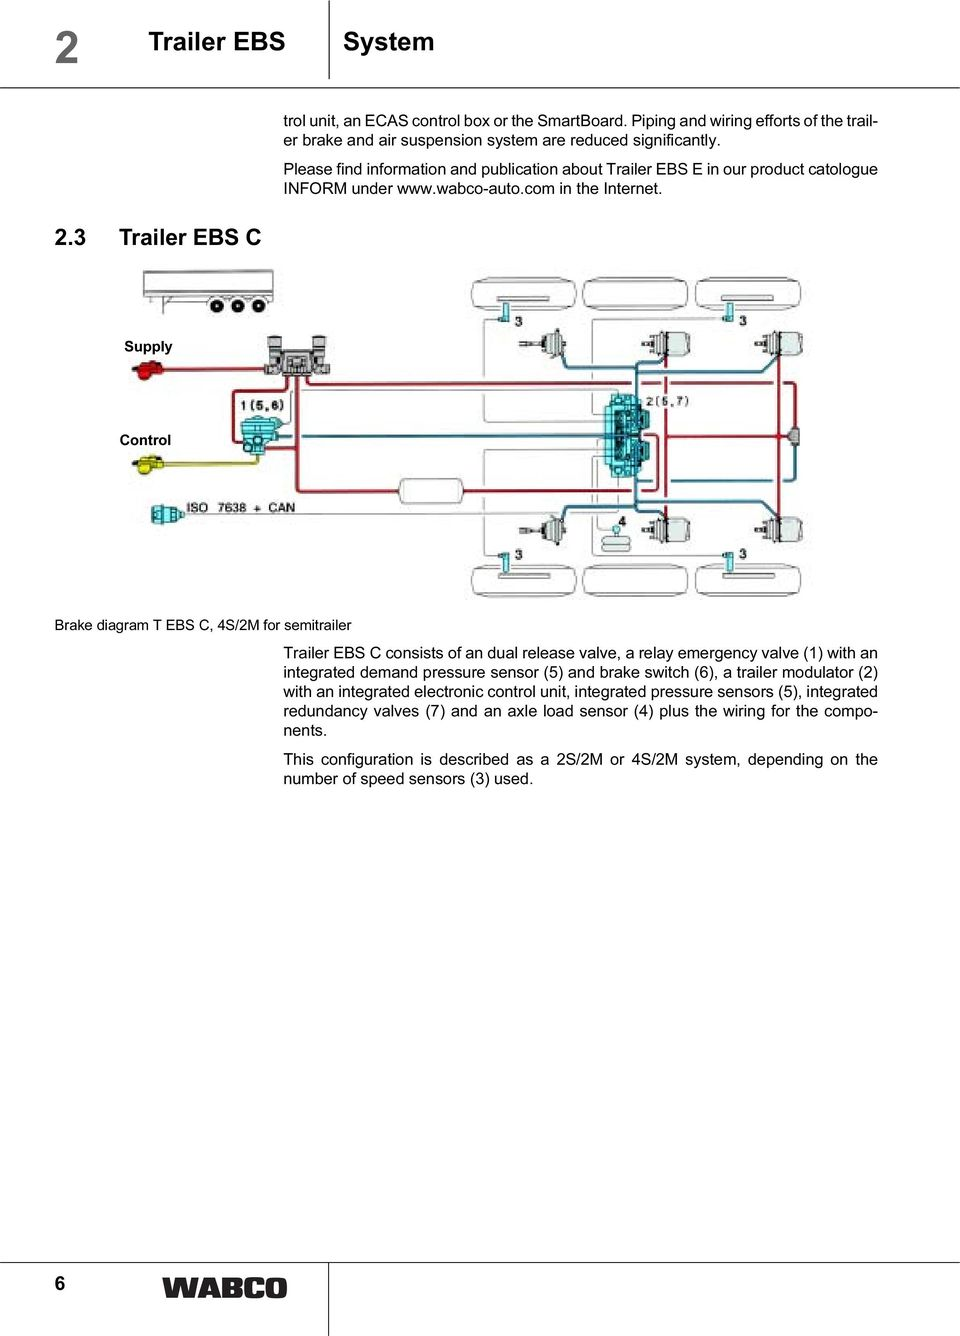 Trailer Ebs C D System Description Pdf Emergency Brake Wiring Diagram Supply Control T 4s 2m For Semitrailer